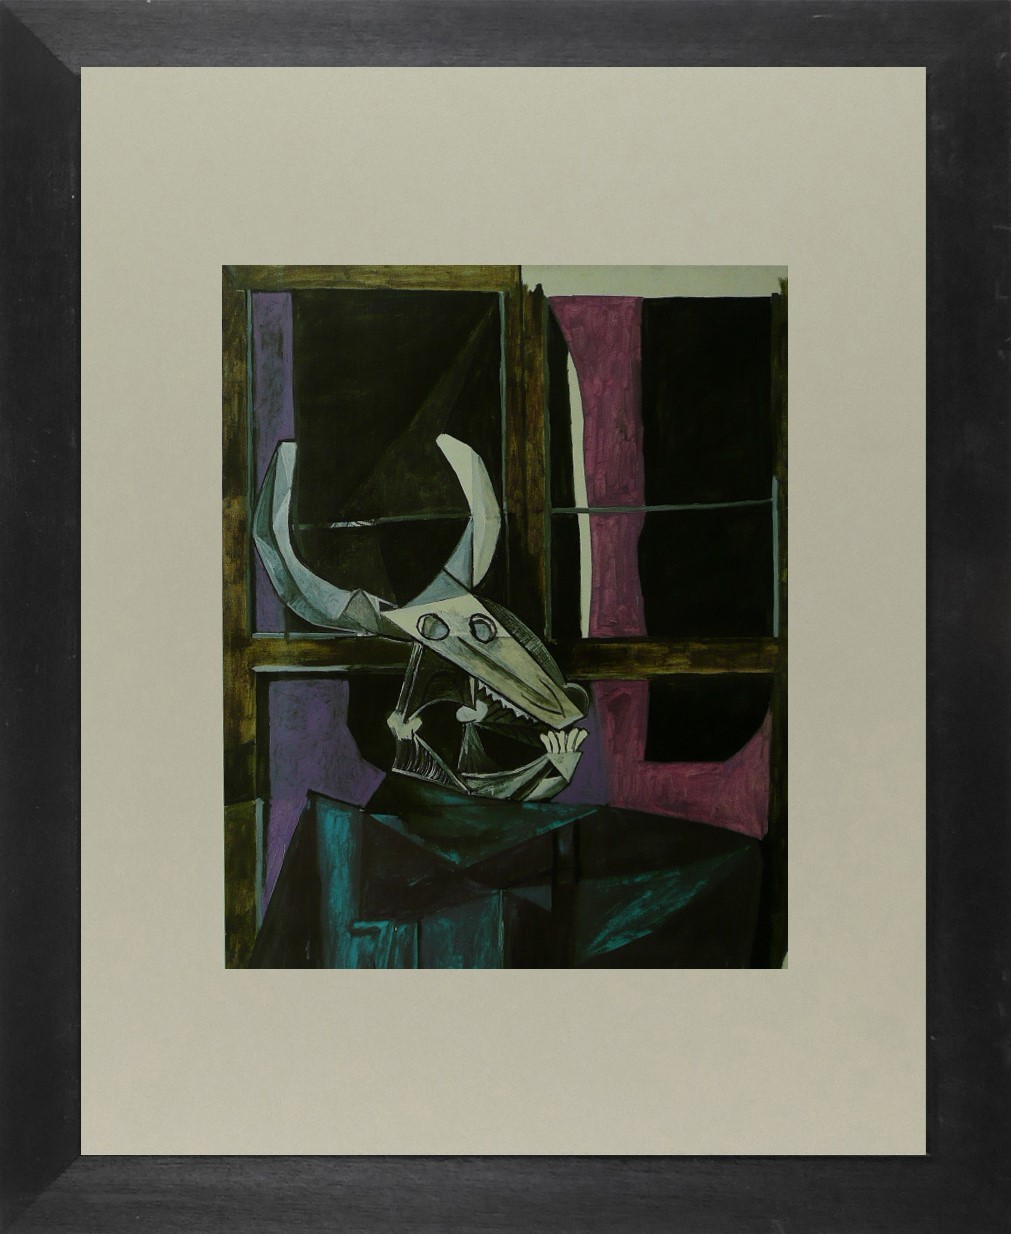 Still life with steer skull - Picasso - Framed Picture 11 x 14